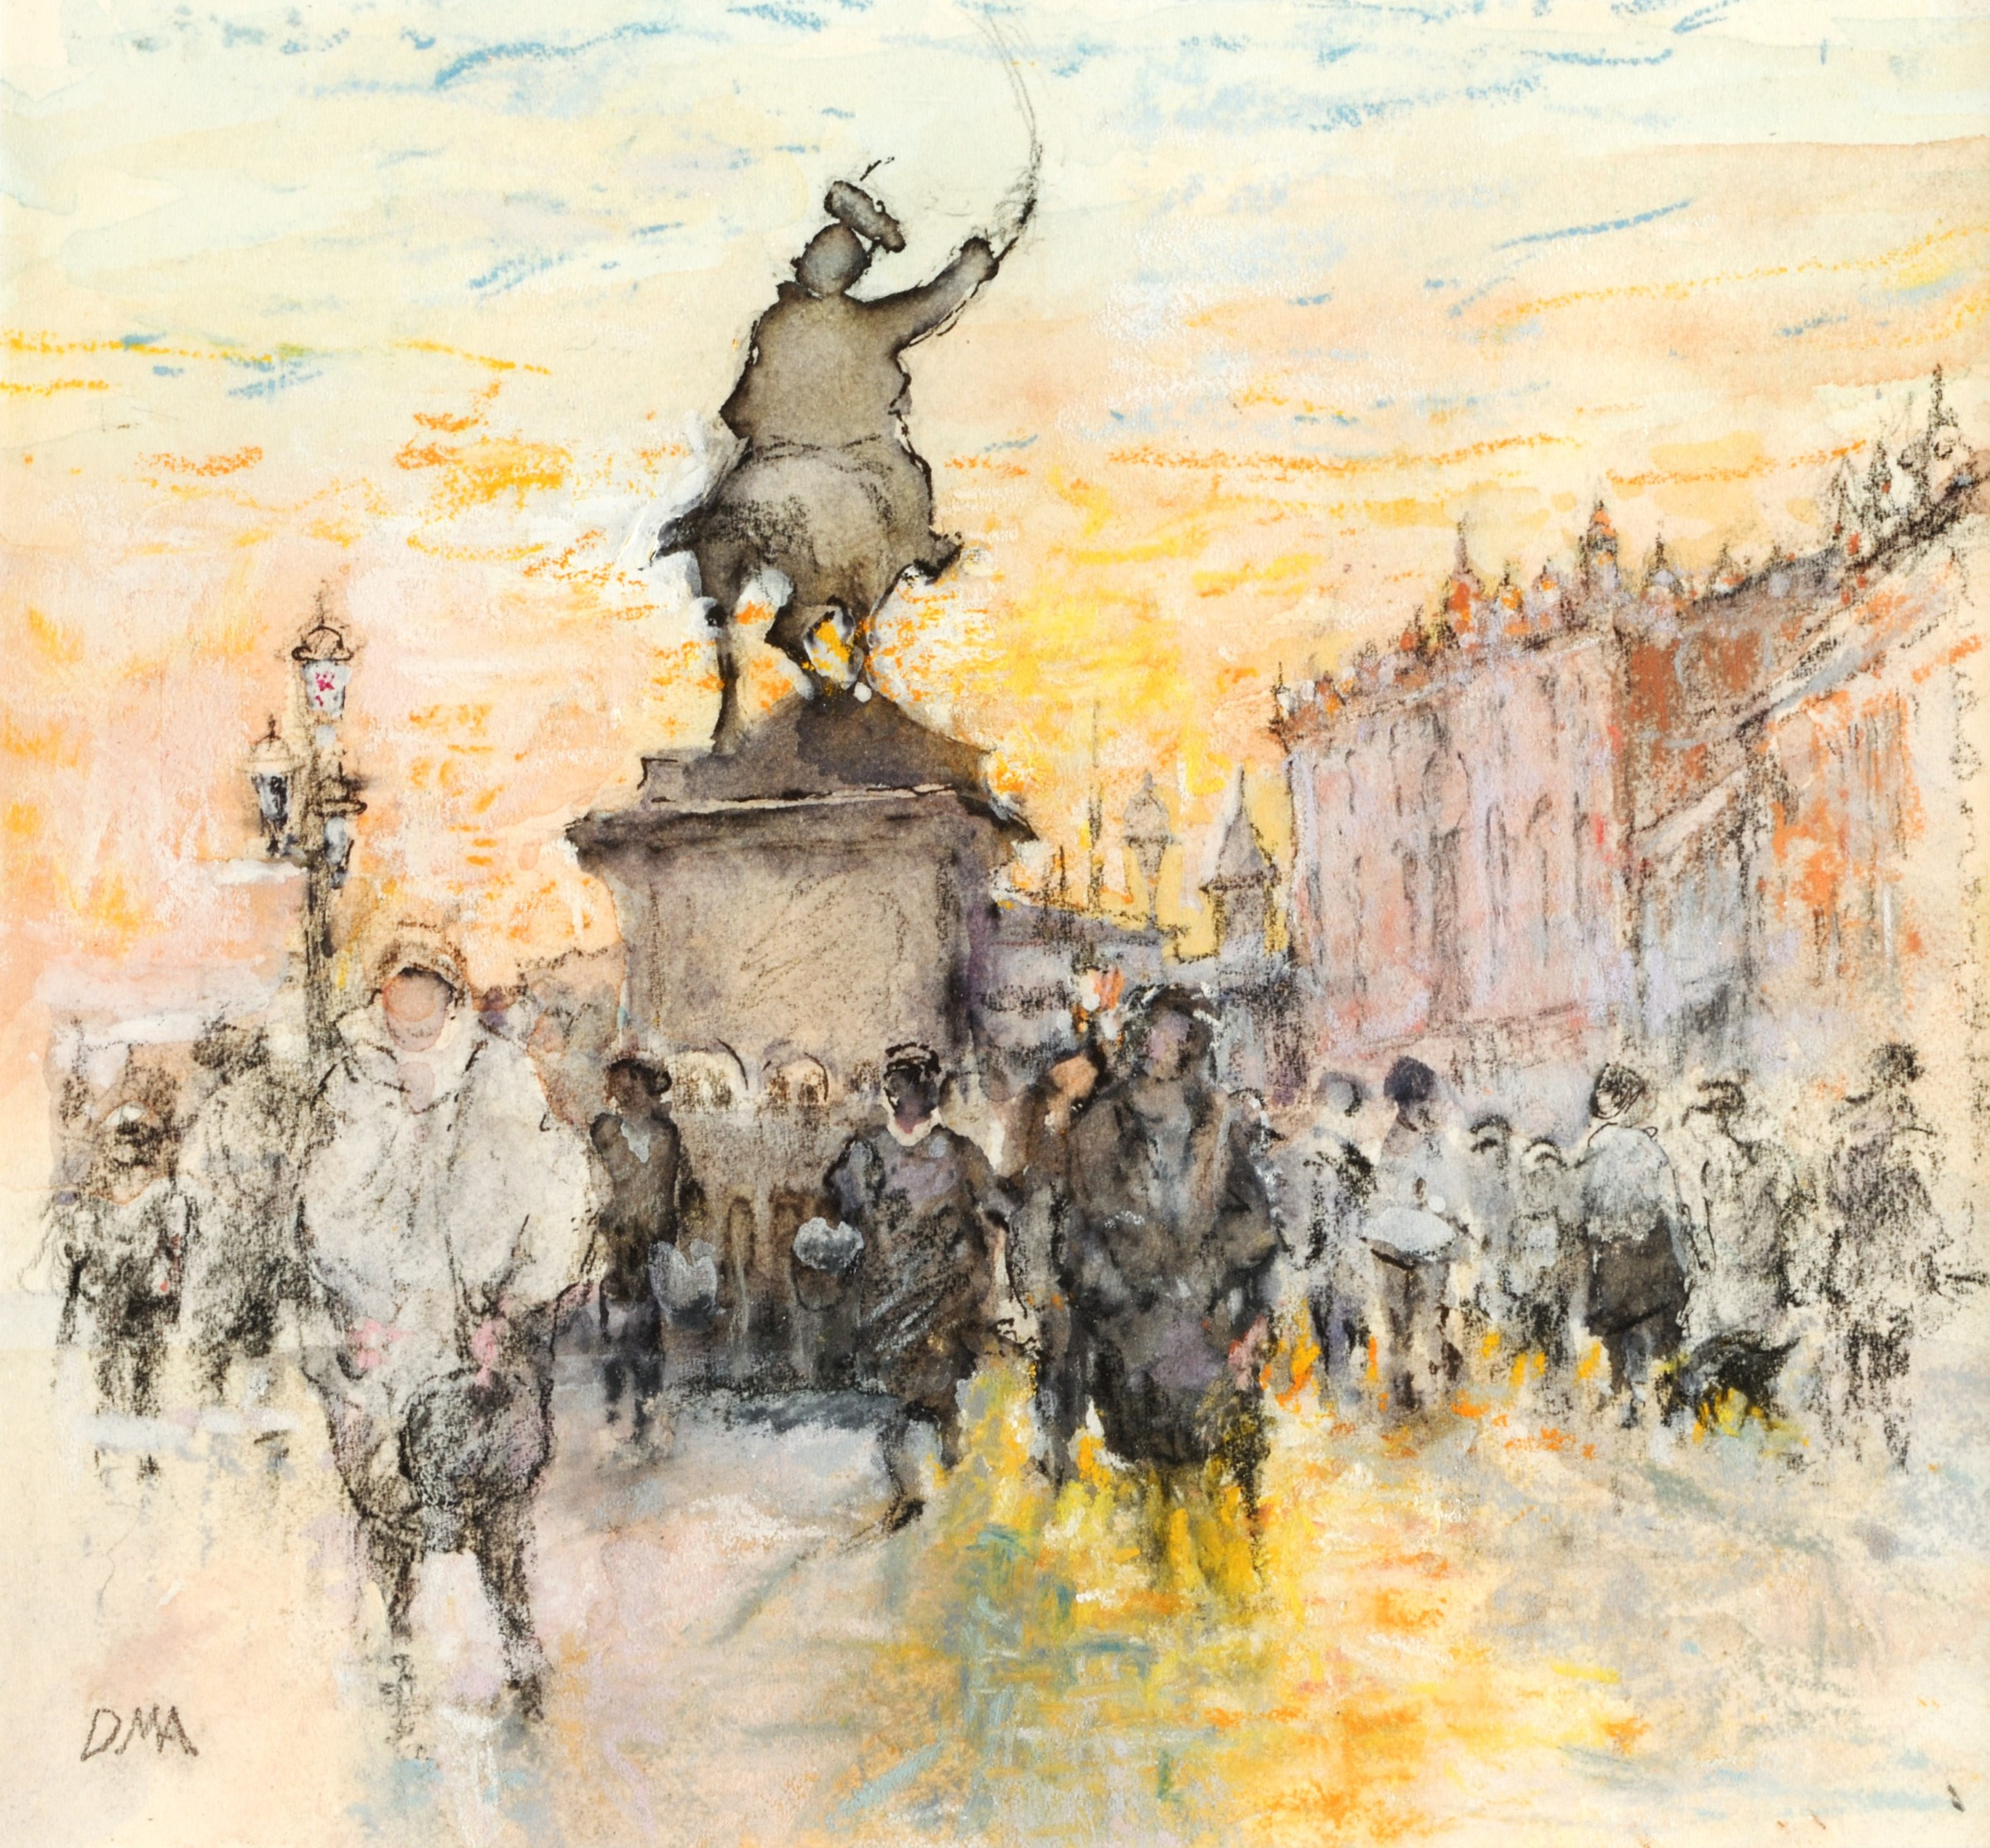 """<span class=""""link fancybox-details-link""""><a href=""""/artists/116-diana-armfield-ra/works/12385-diana-armfield-ra-golden-light-on-the-riva-venice/"""">View Detail Page</a></span><div class=""""artist""""><span class=""""artist""""><strong>Diana Armfield RA</strong></span></div><div class=""""title""""><em>Golden Light on the Riva, Venice</em></div><div class=""""medium"""">watercolour</div><div class=""""price"""">£1,500.00</div>"""